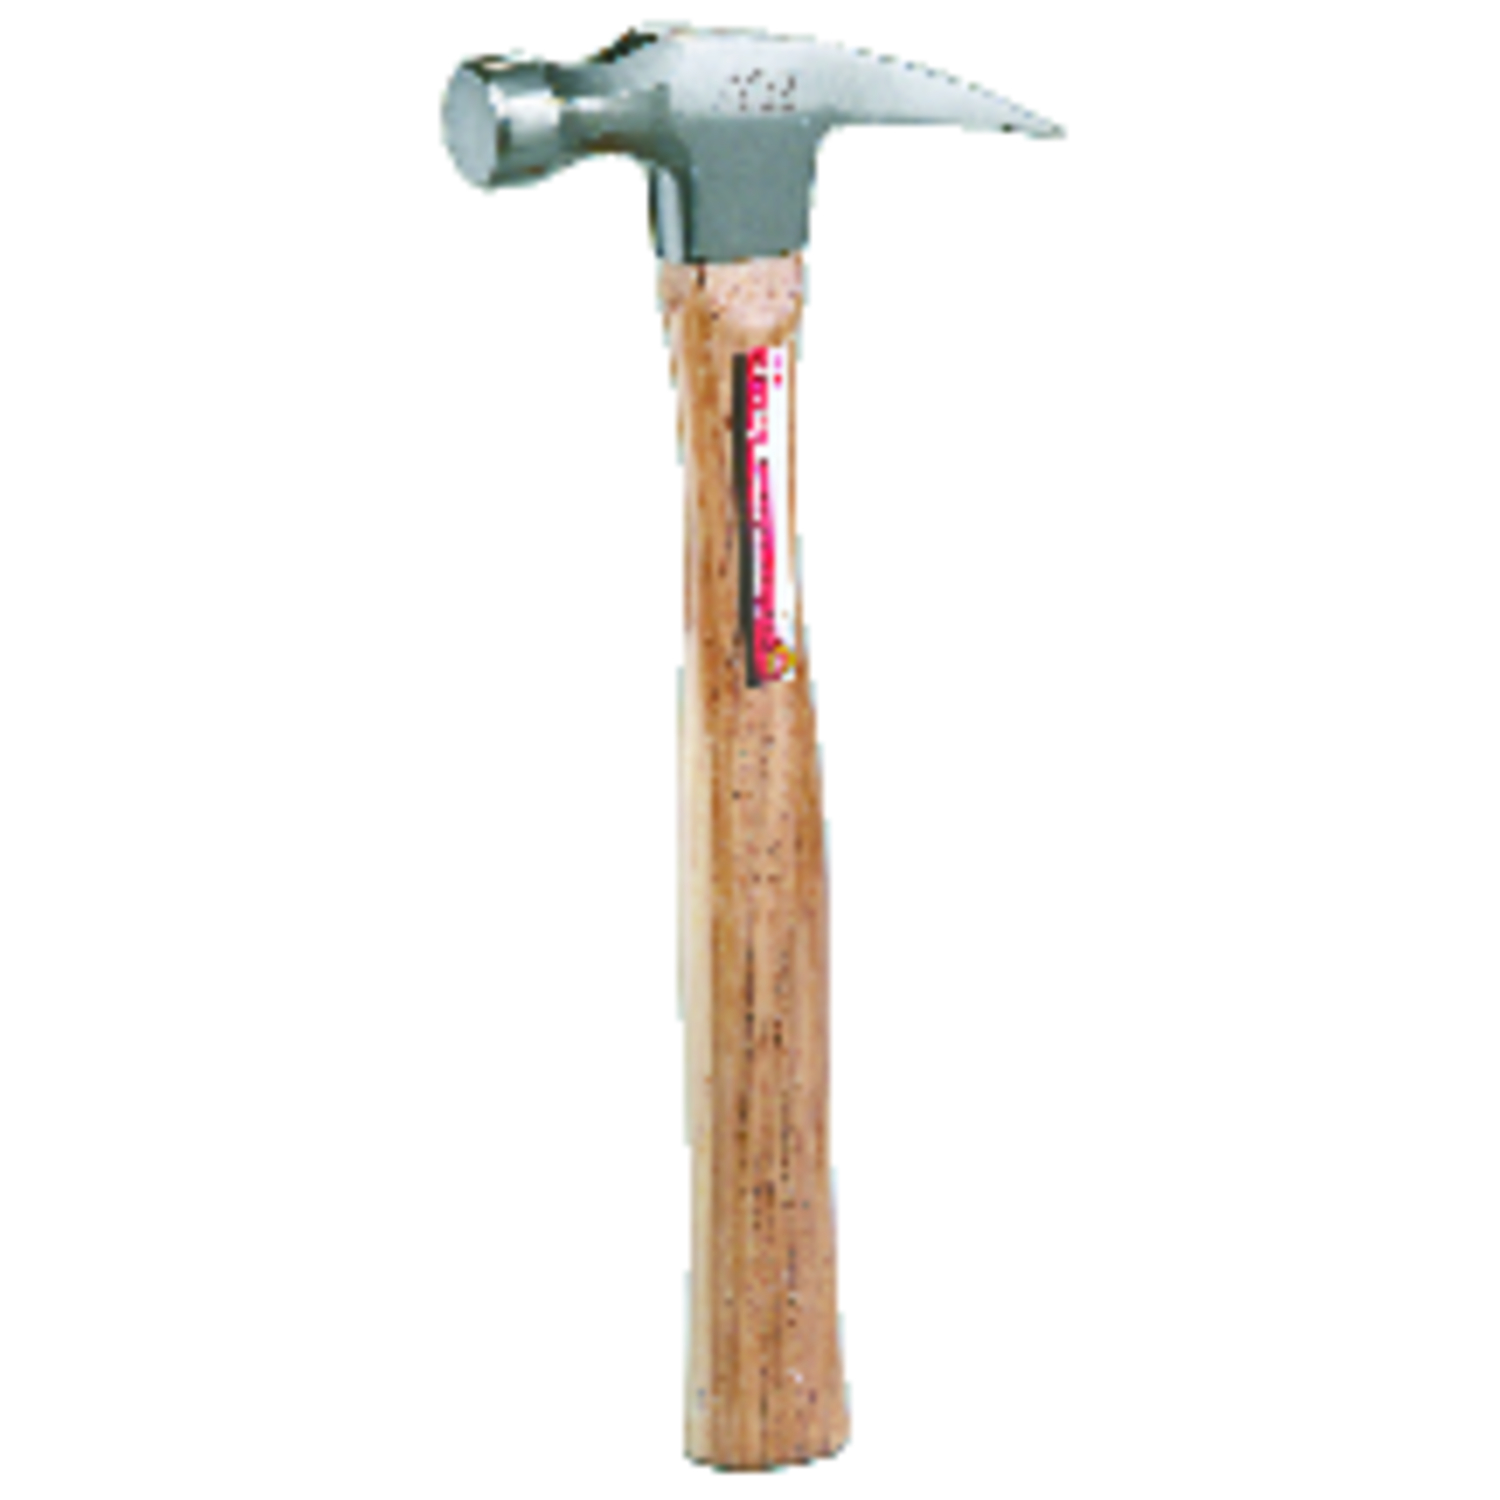 Ace 16 oz. Smooth Face Rip Claw Hammer Hickory Handle